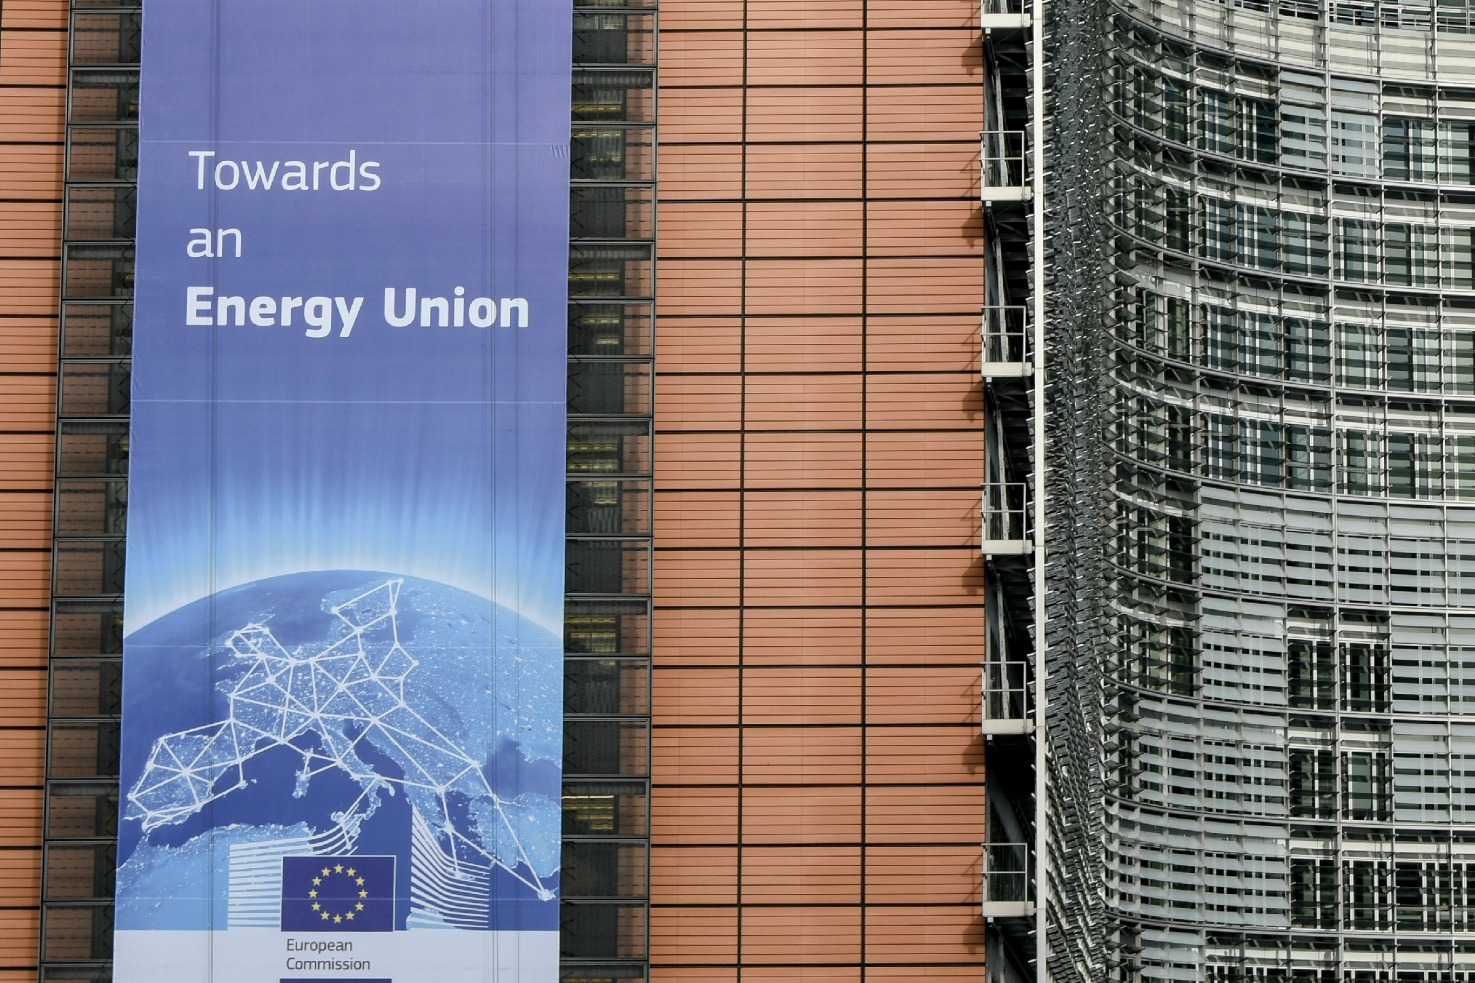 European Commission building's banner on Energy Union